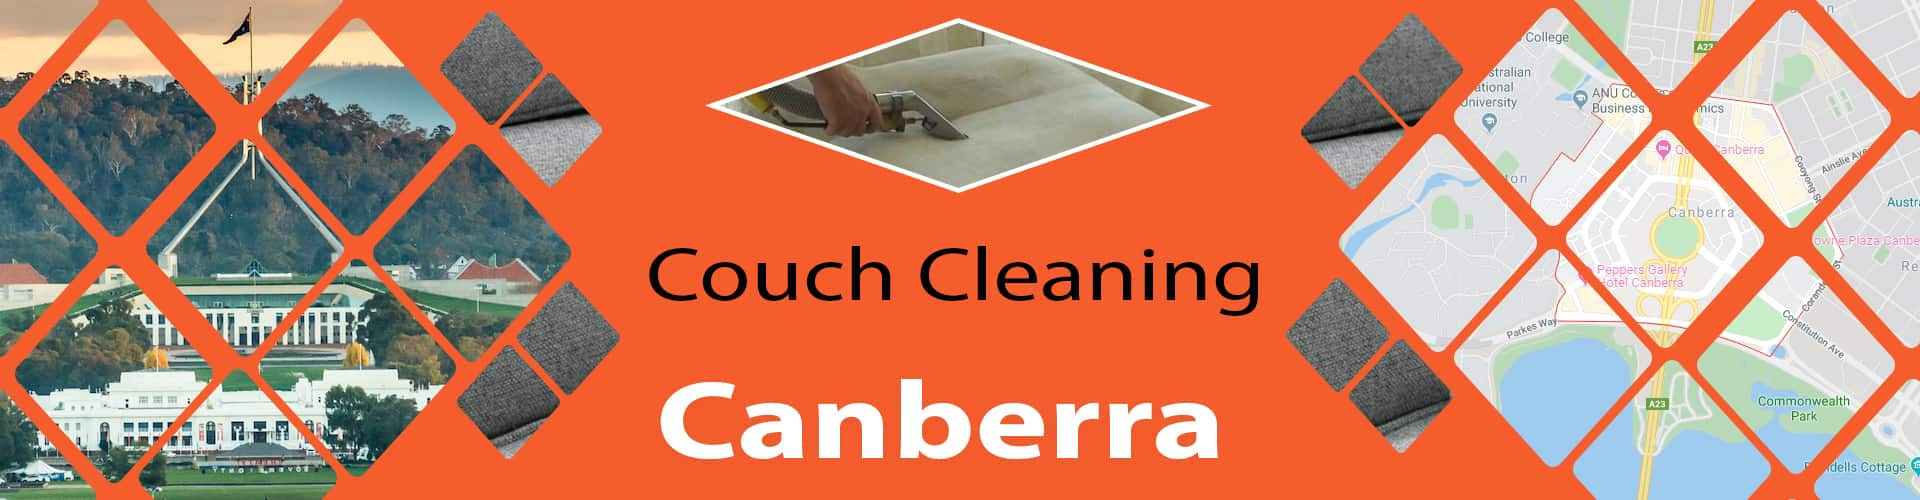 Couch Cleaning Canberra